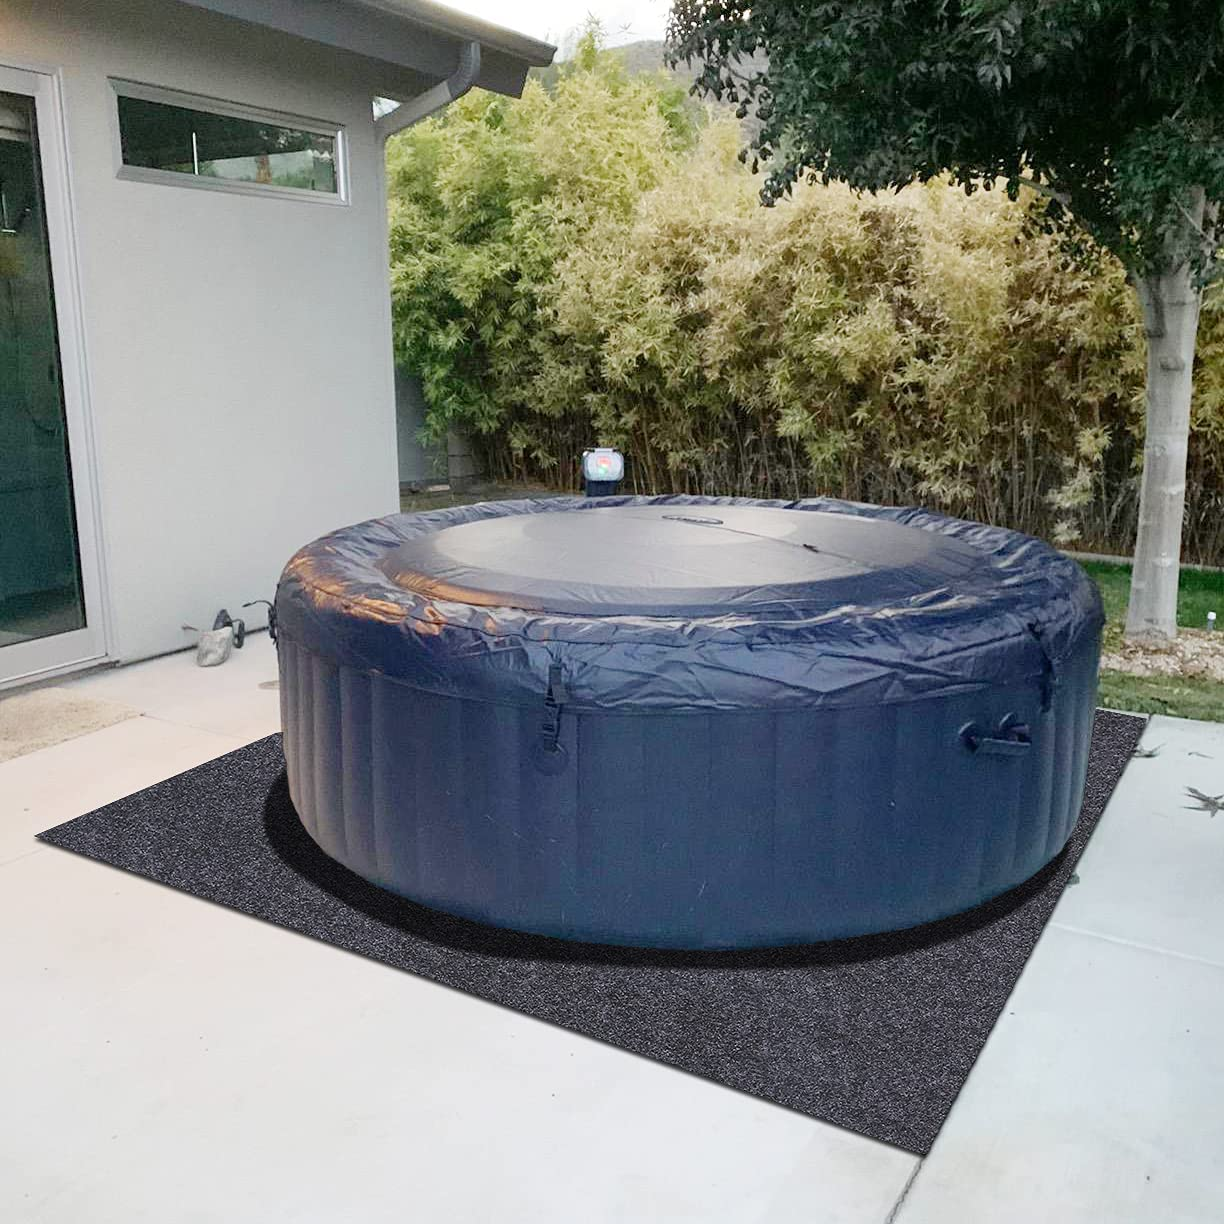 Hot Tubs Mat Protect The hot Waterpro Large-scale sale tubs Japan's largest assortment from wear Absorbent